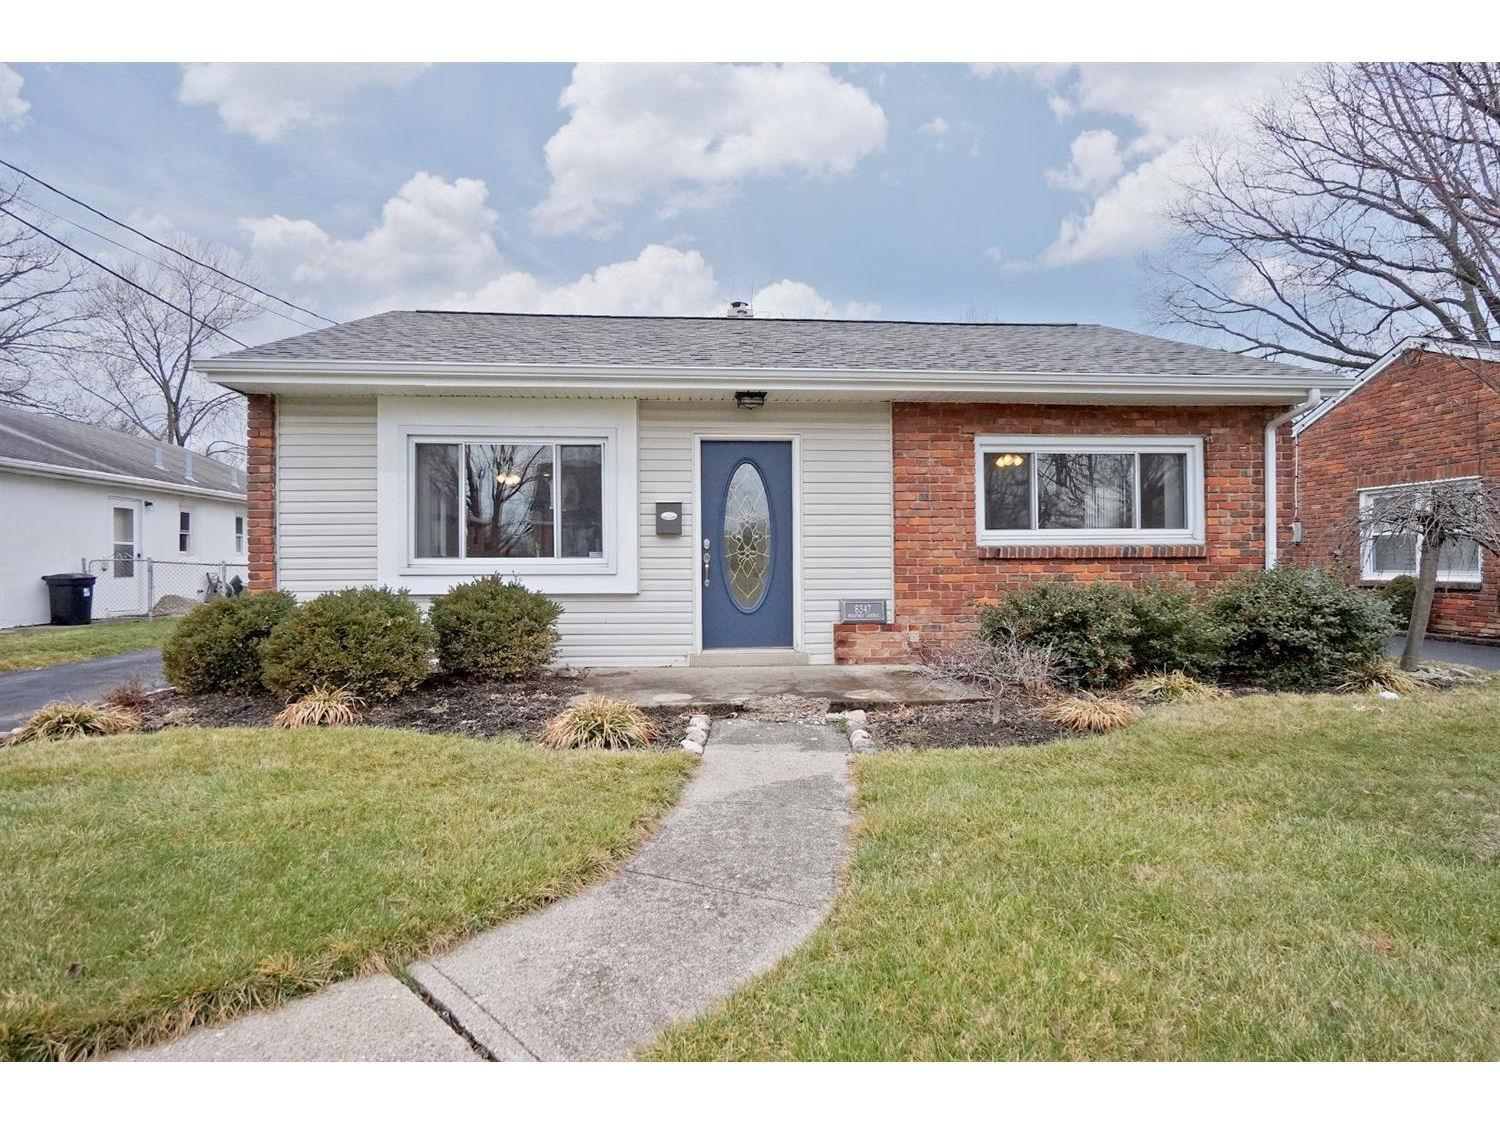 dillonvale singles 100 dean st, dillonvale, oh is a 616 sq ft, 1 bed, 1 bath home listed on trulia for $40,365 in dillonvale, ohio.